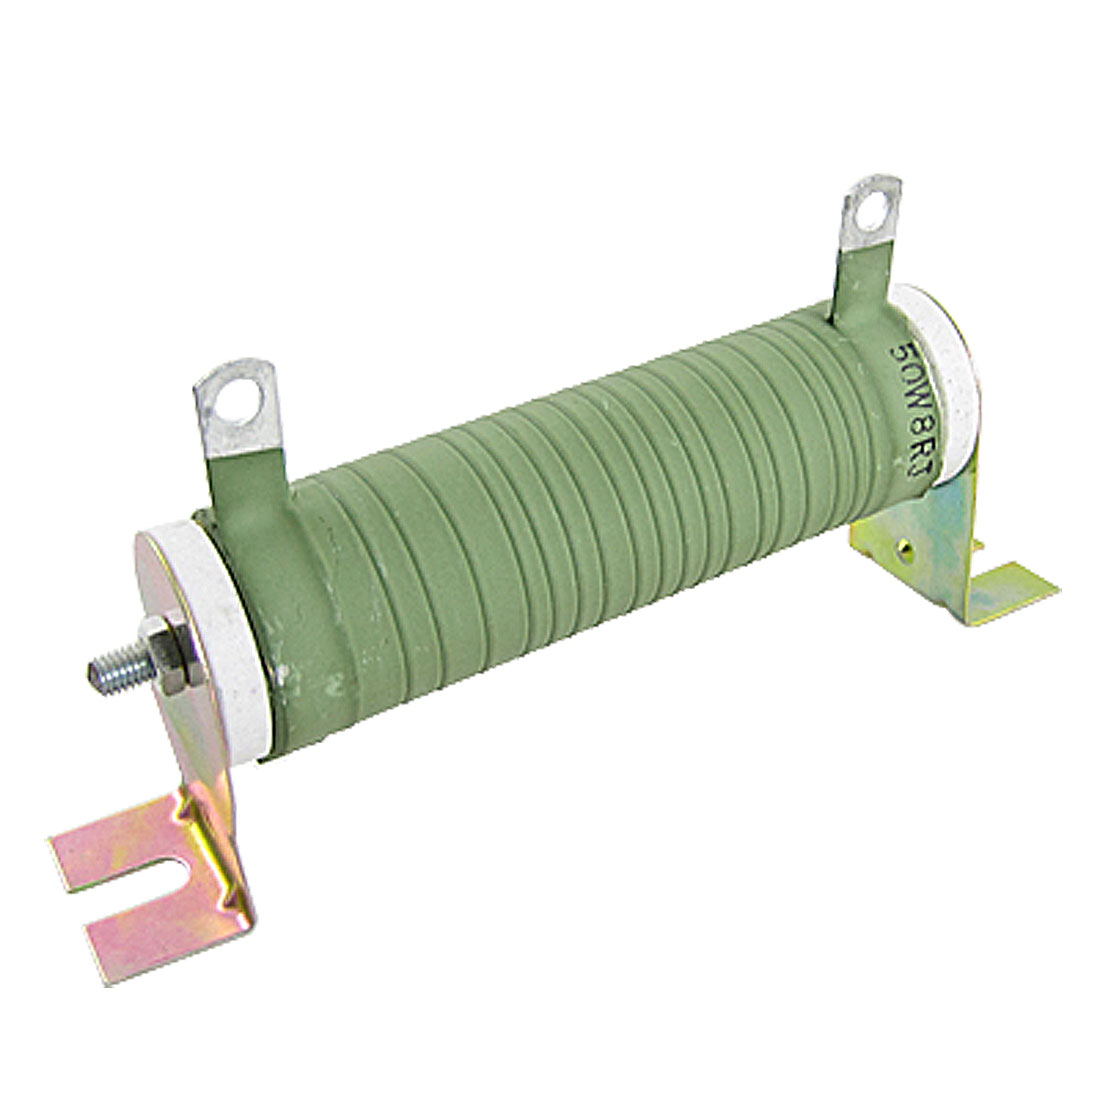 Ceramic Tube Fixed Wirewound Resistor 50W Watt 8 ohm